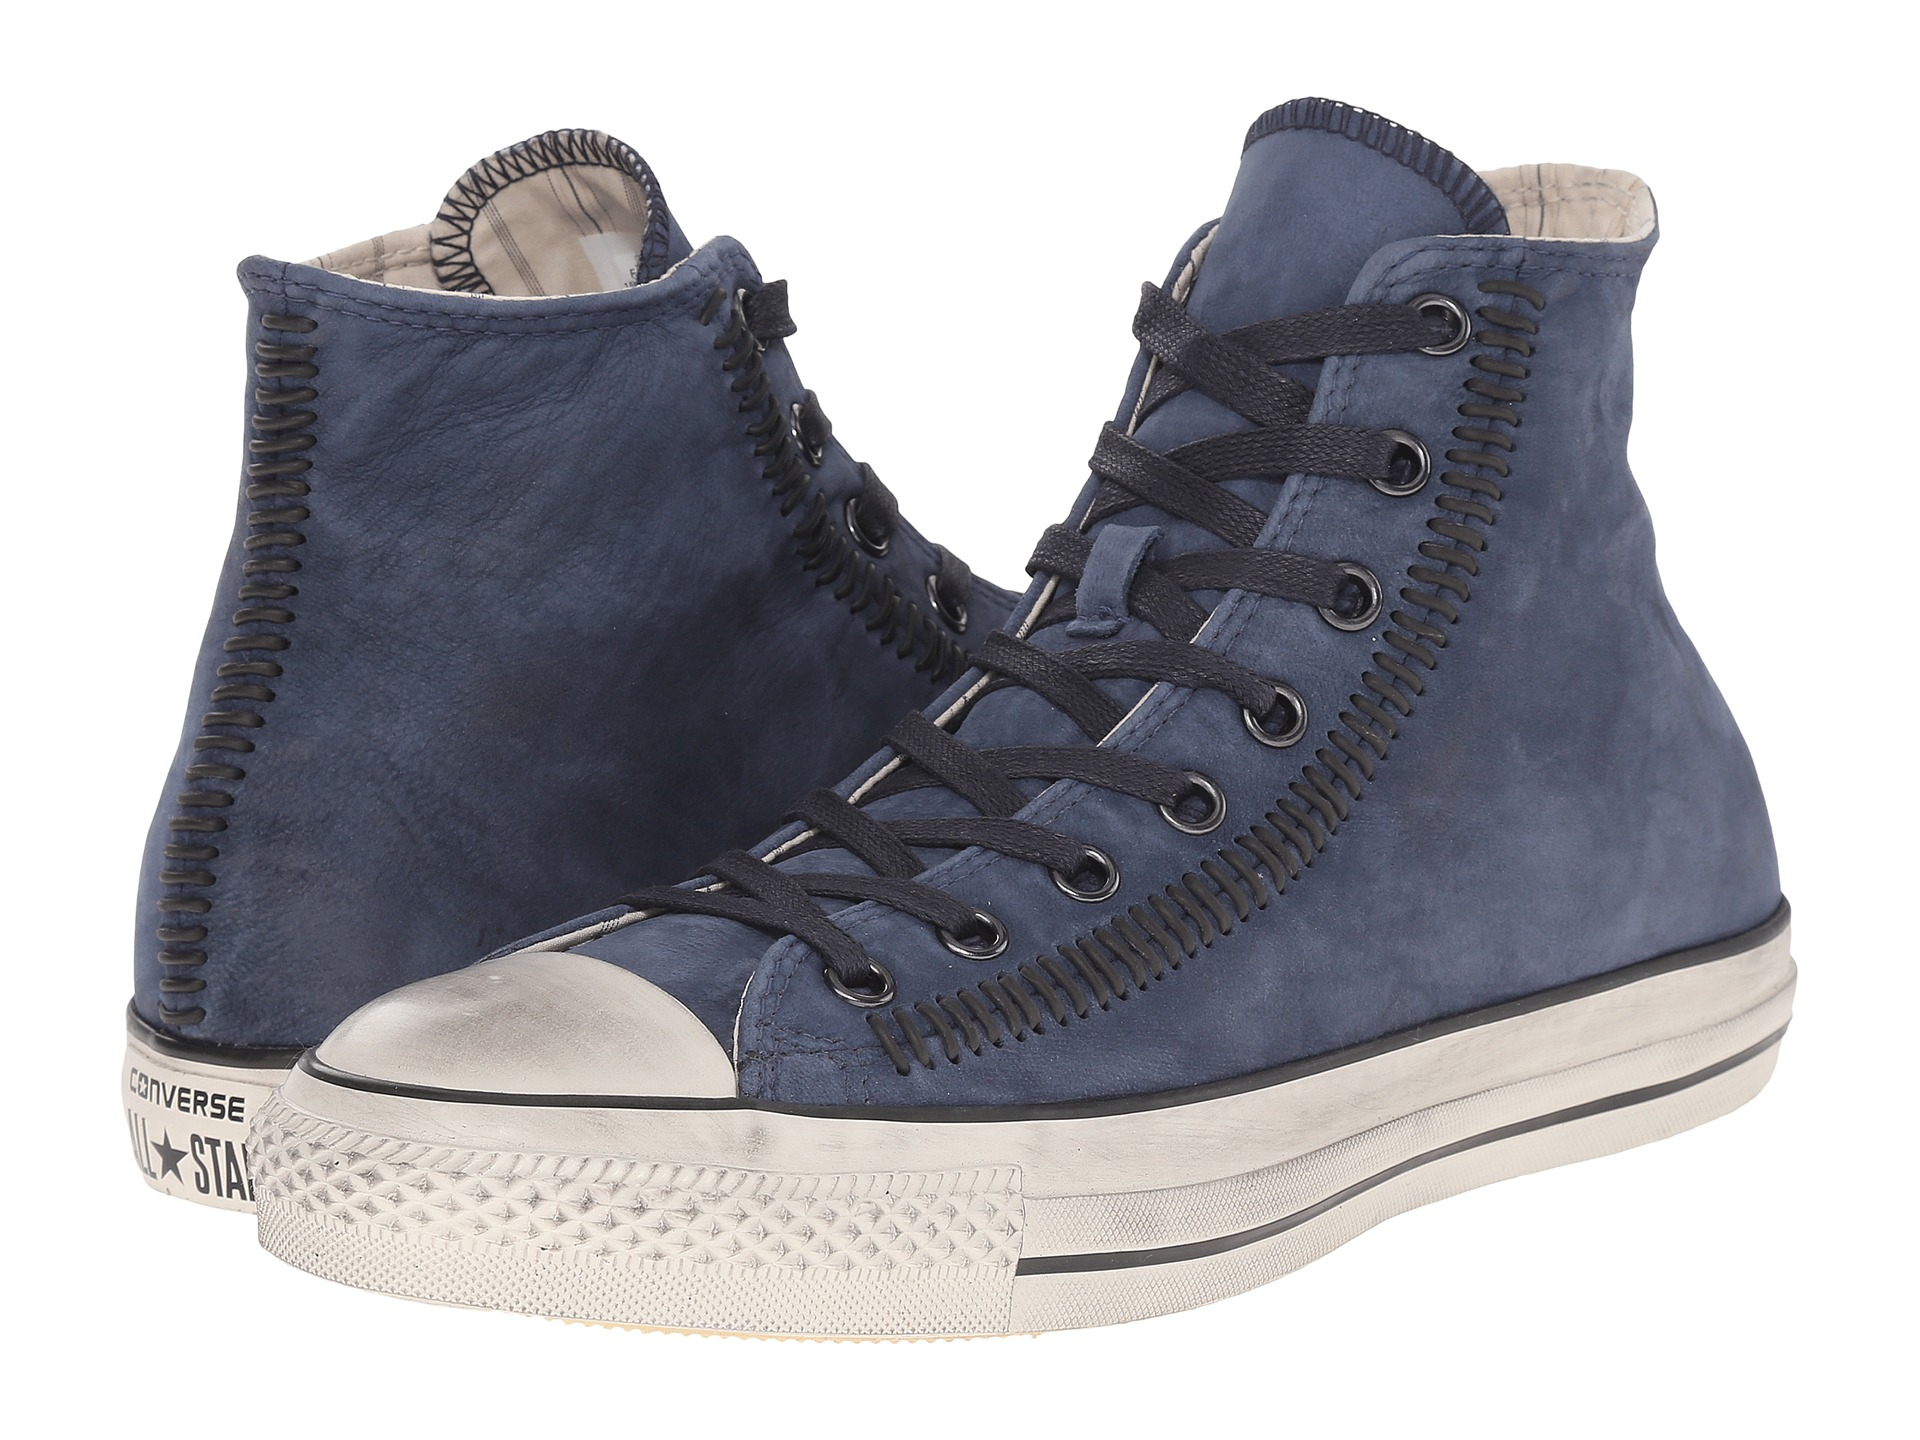 Best Place To Buy Converse All Star Shoes